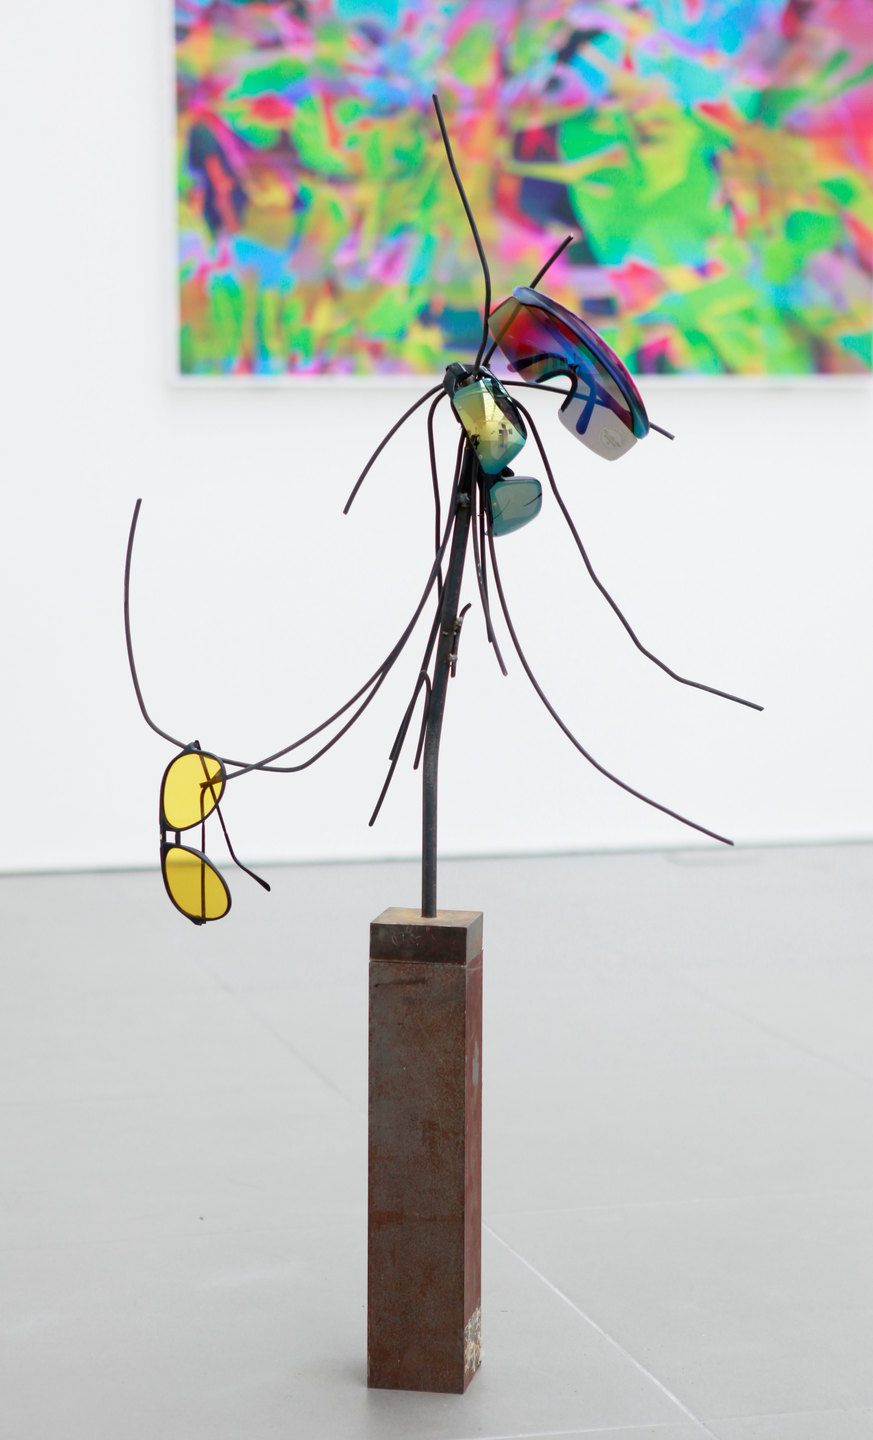 Jack Lavender, Chimera Q.T.E., 'Glasses Tree', sunglasses, steel, 2012, Cell Project Space